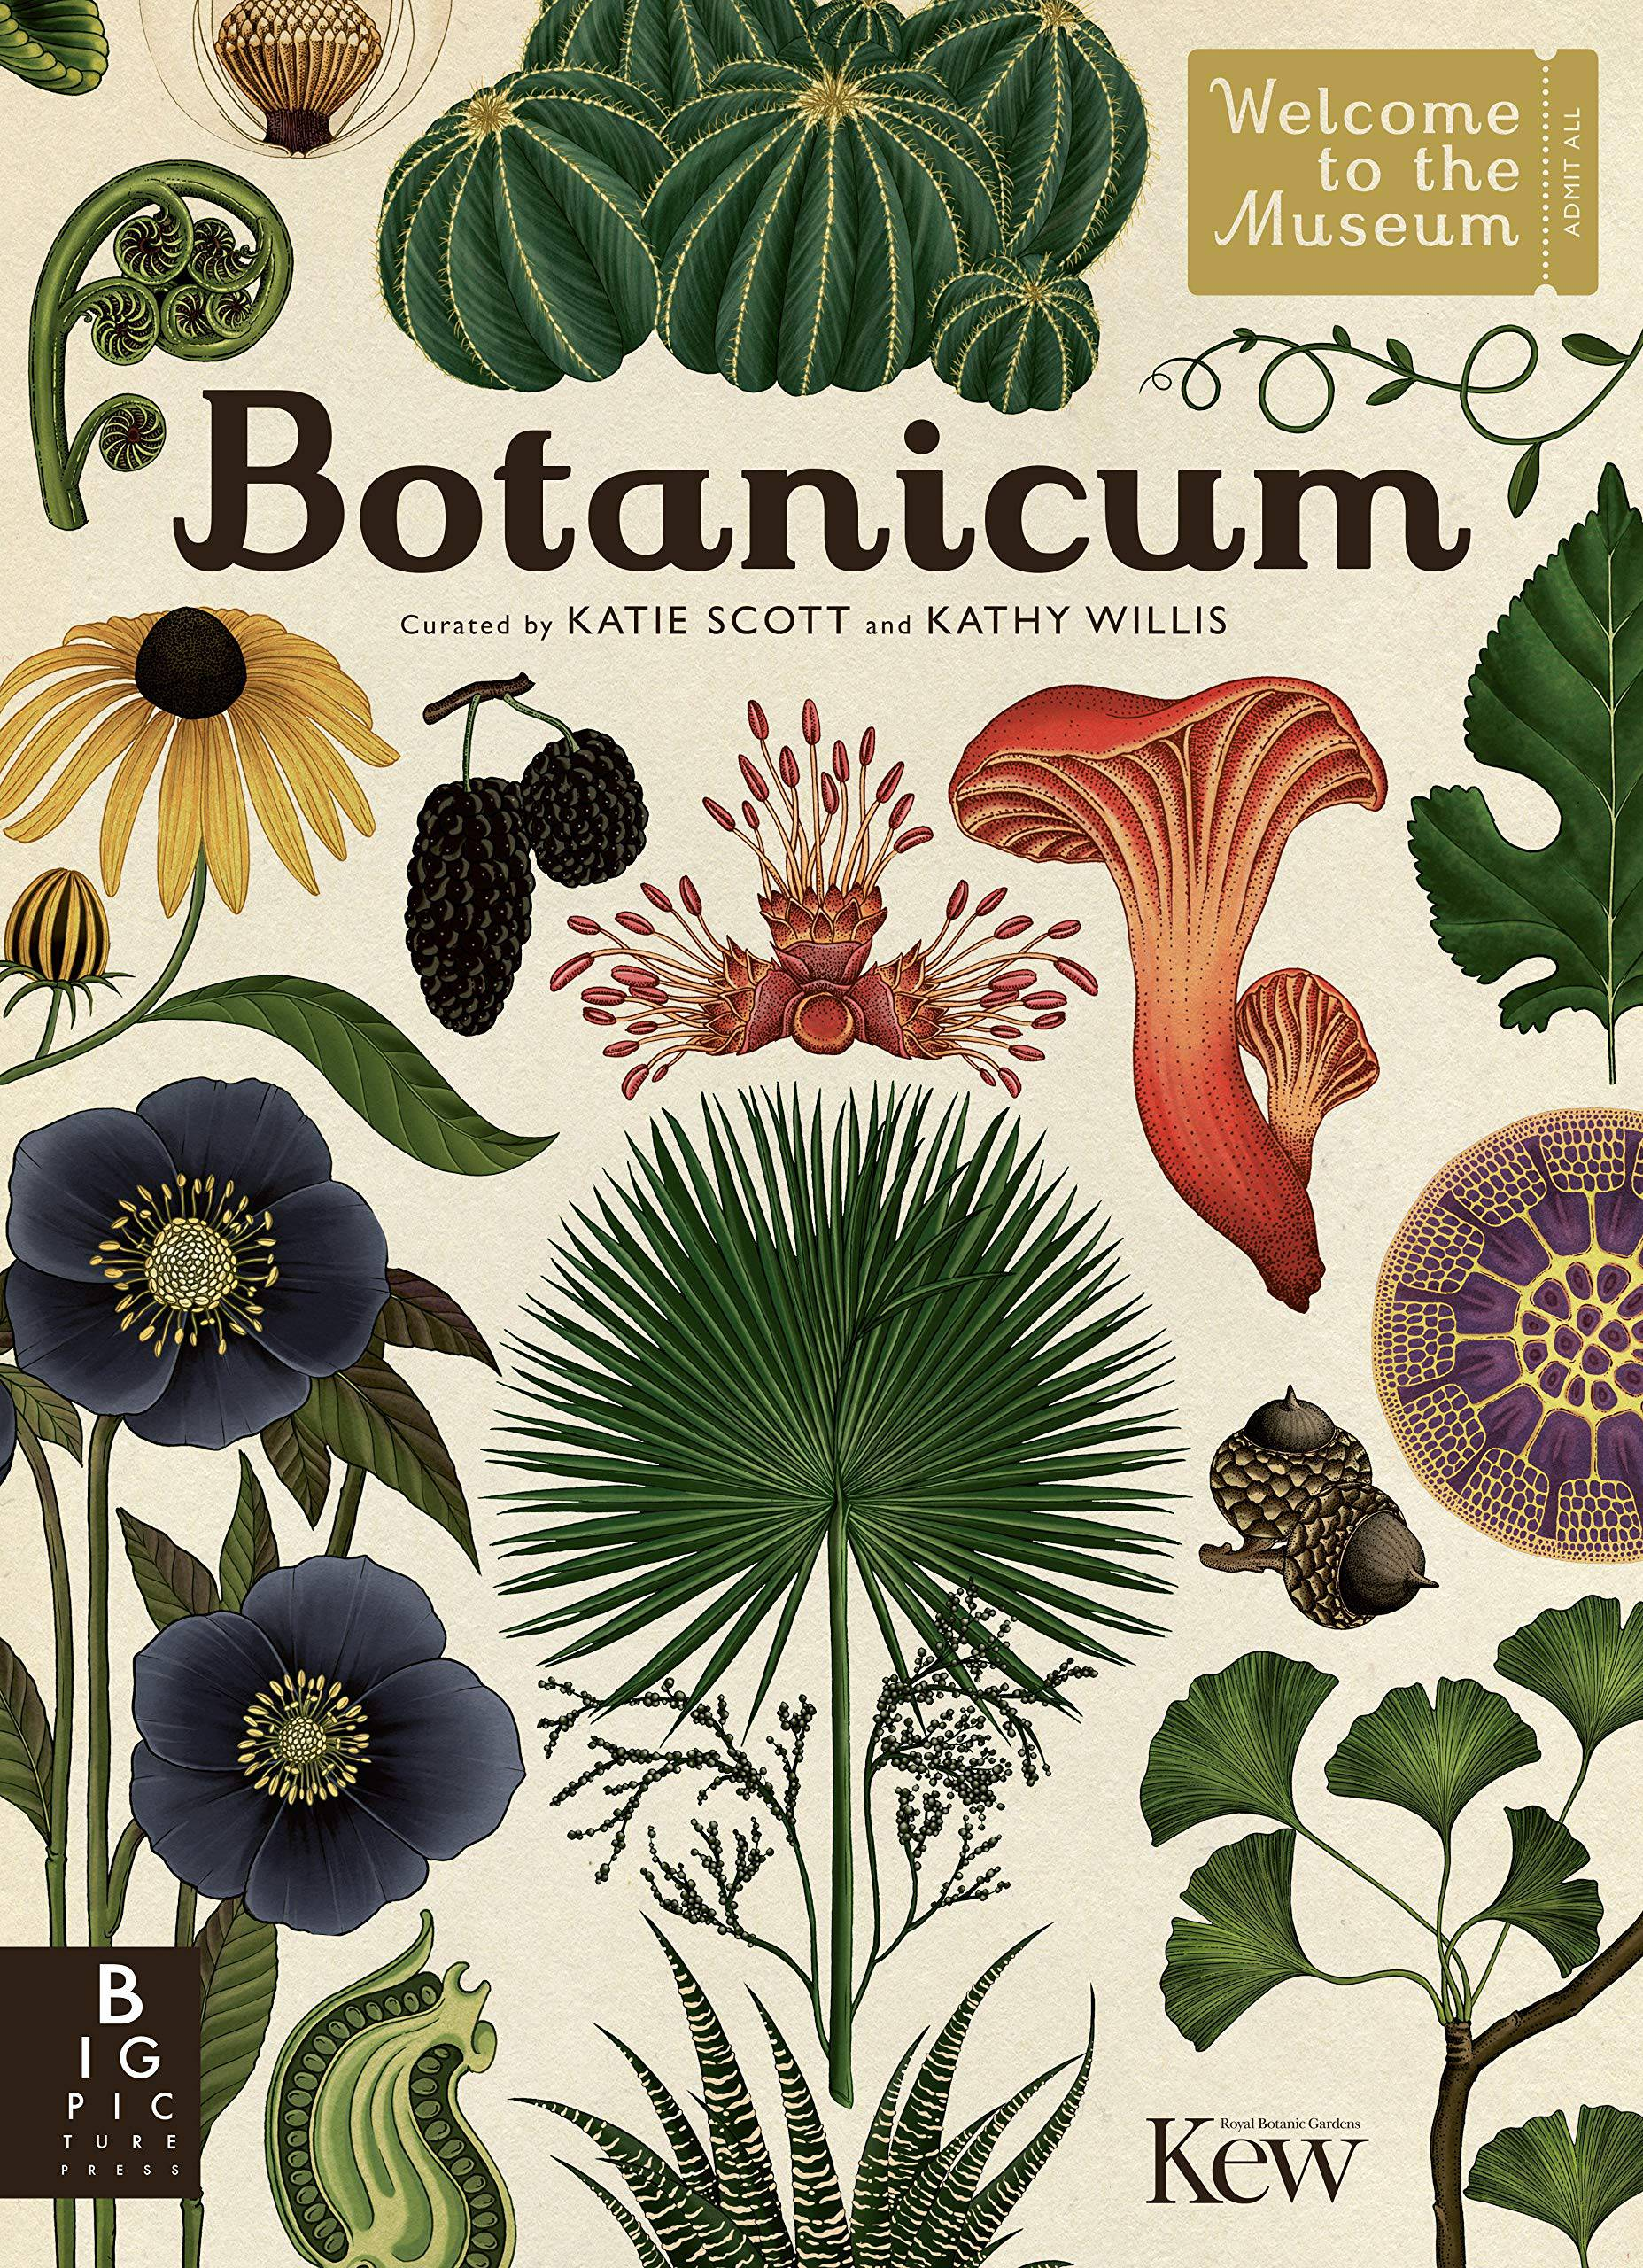 Botanicum by Katie Scott and Kathy Willis